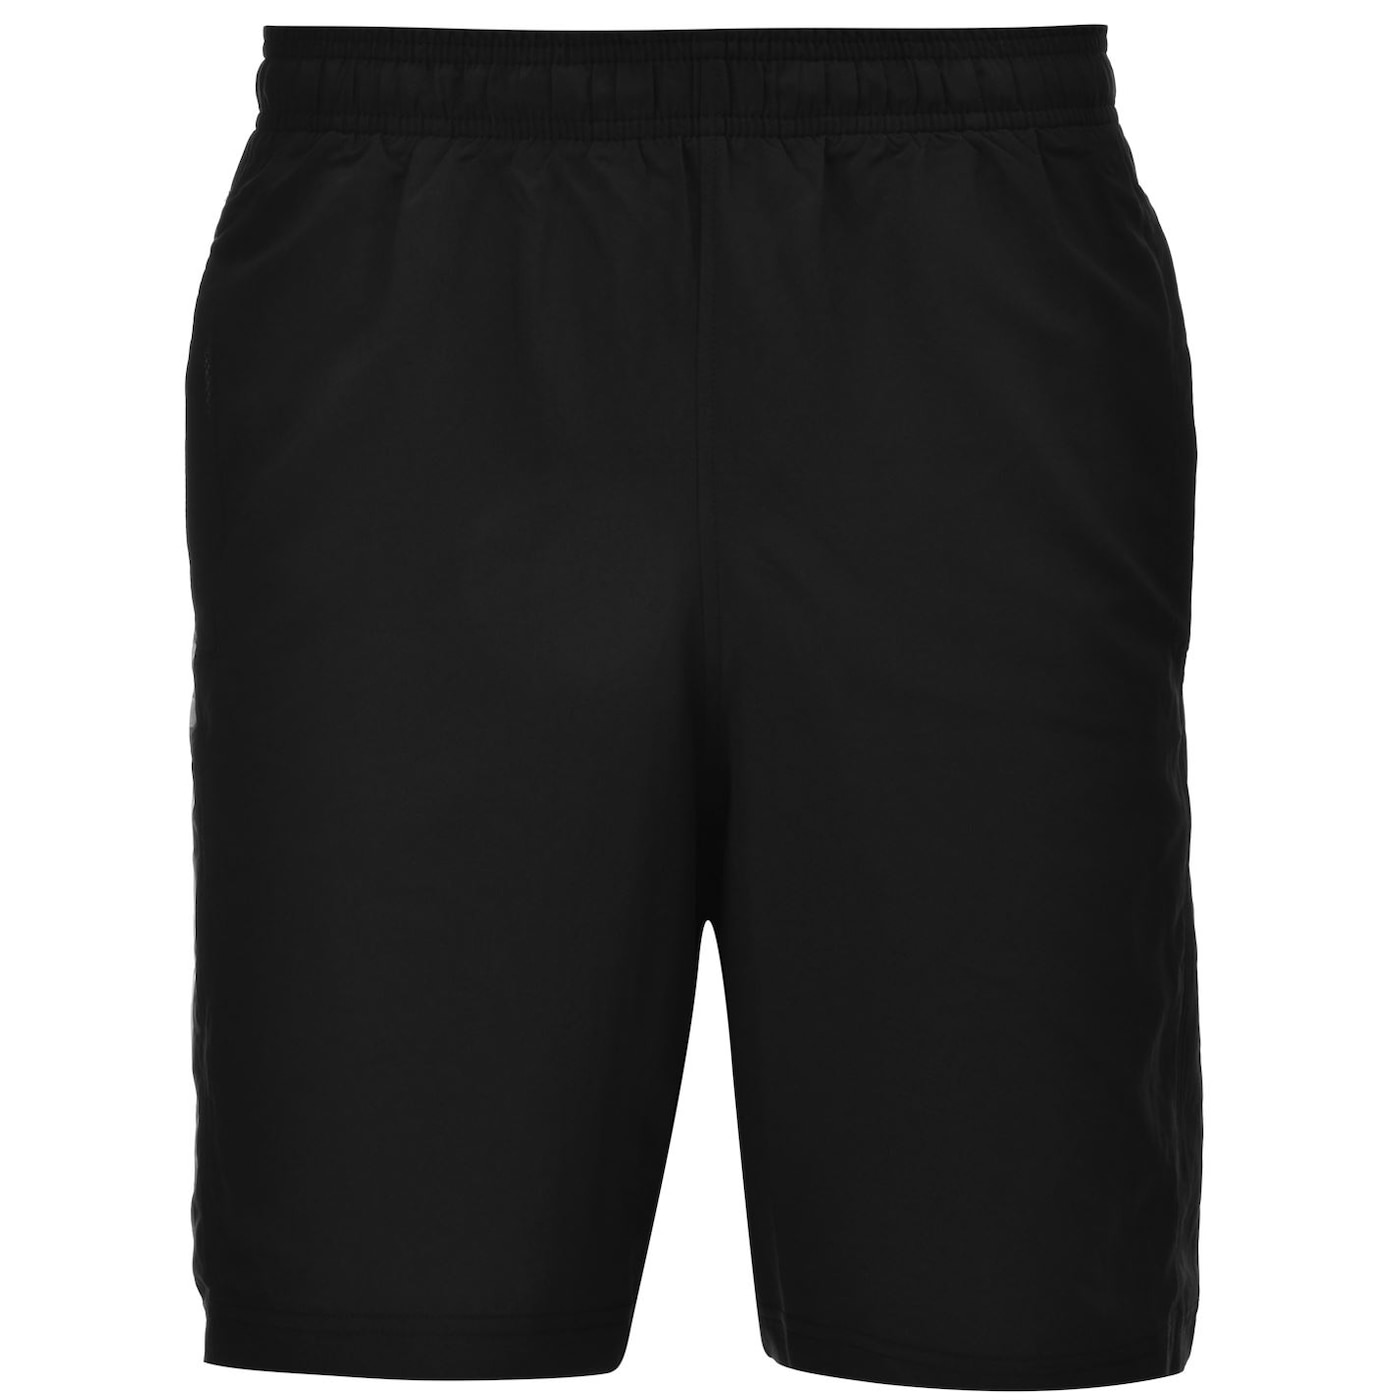 Under Armour Woven Graphic Wordmark Shorts Mens